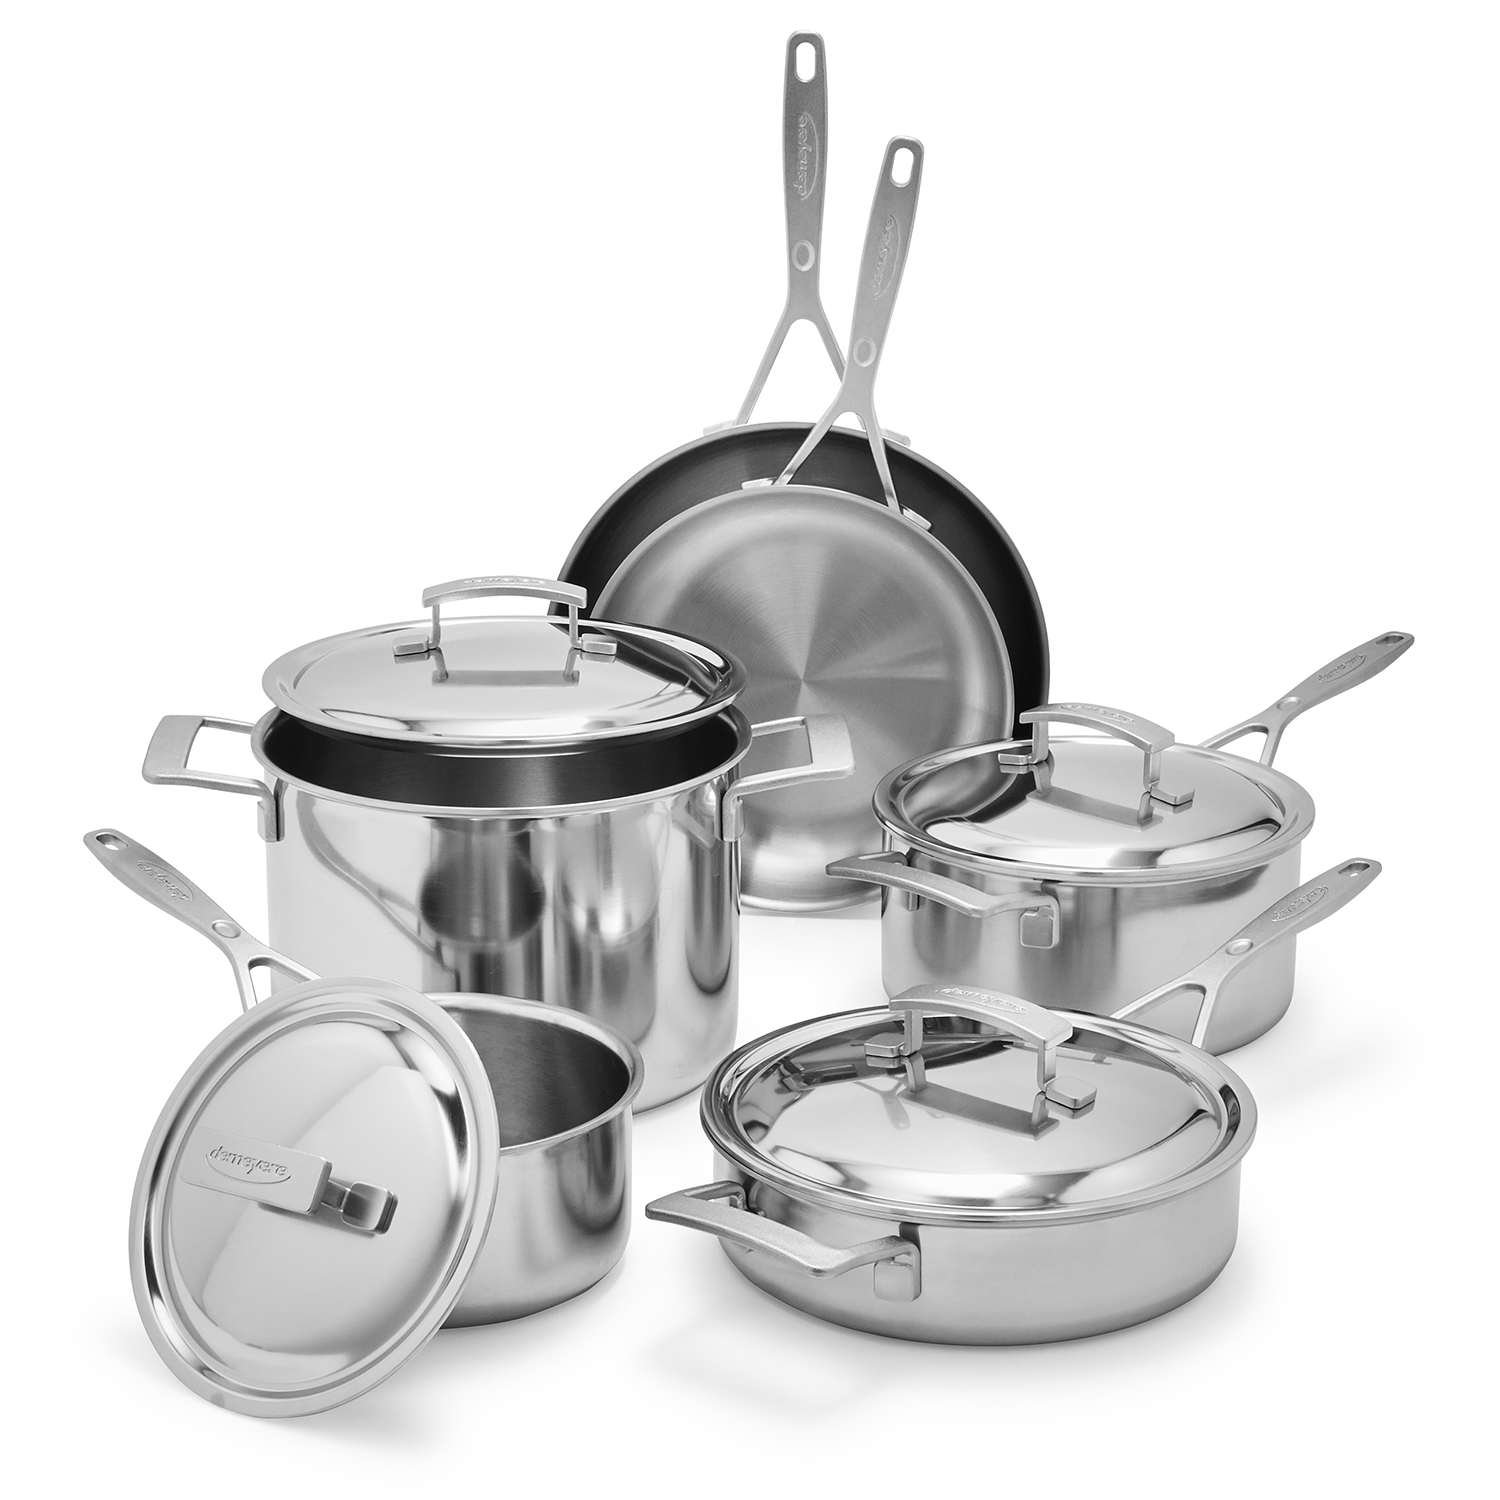 Demeyere 10-piece cookware set with thermo lids